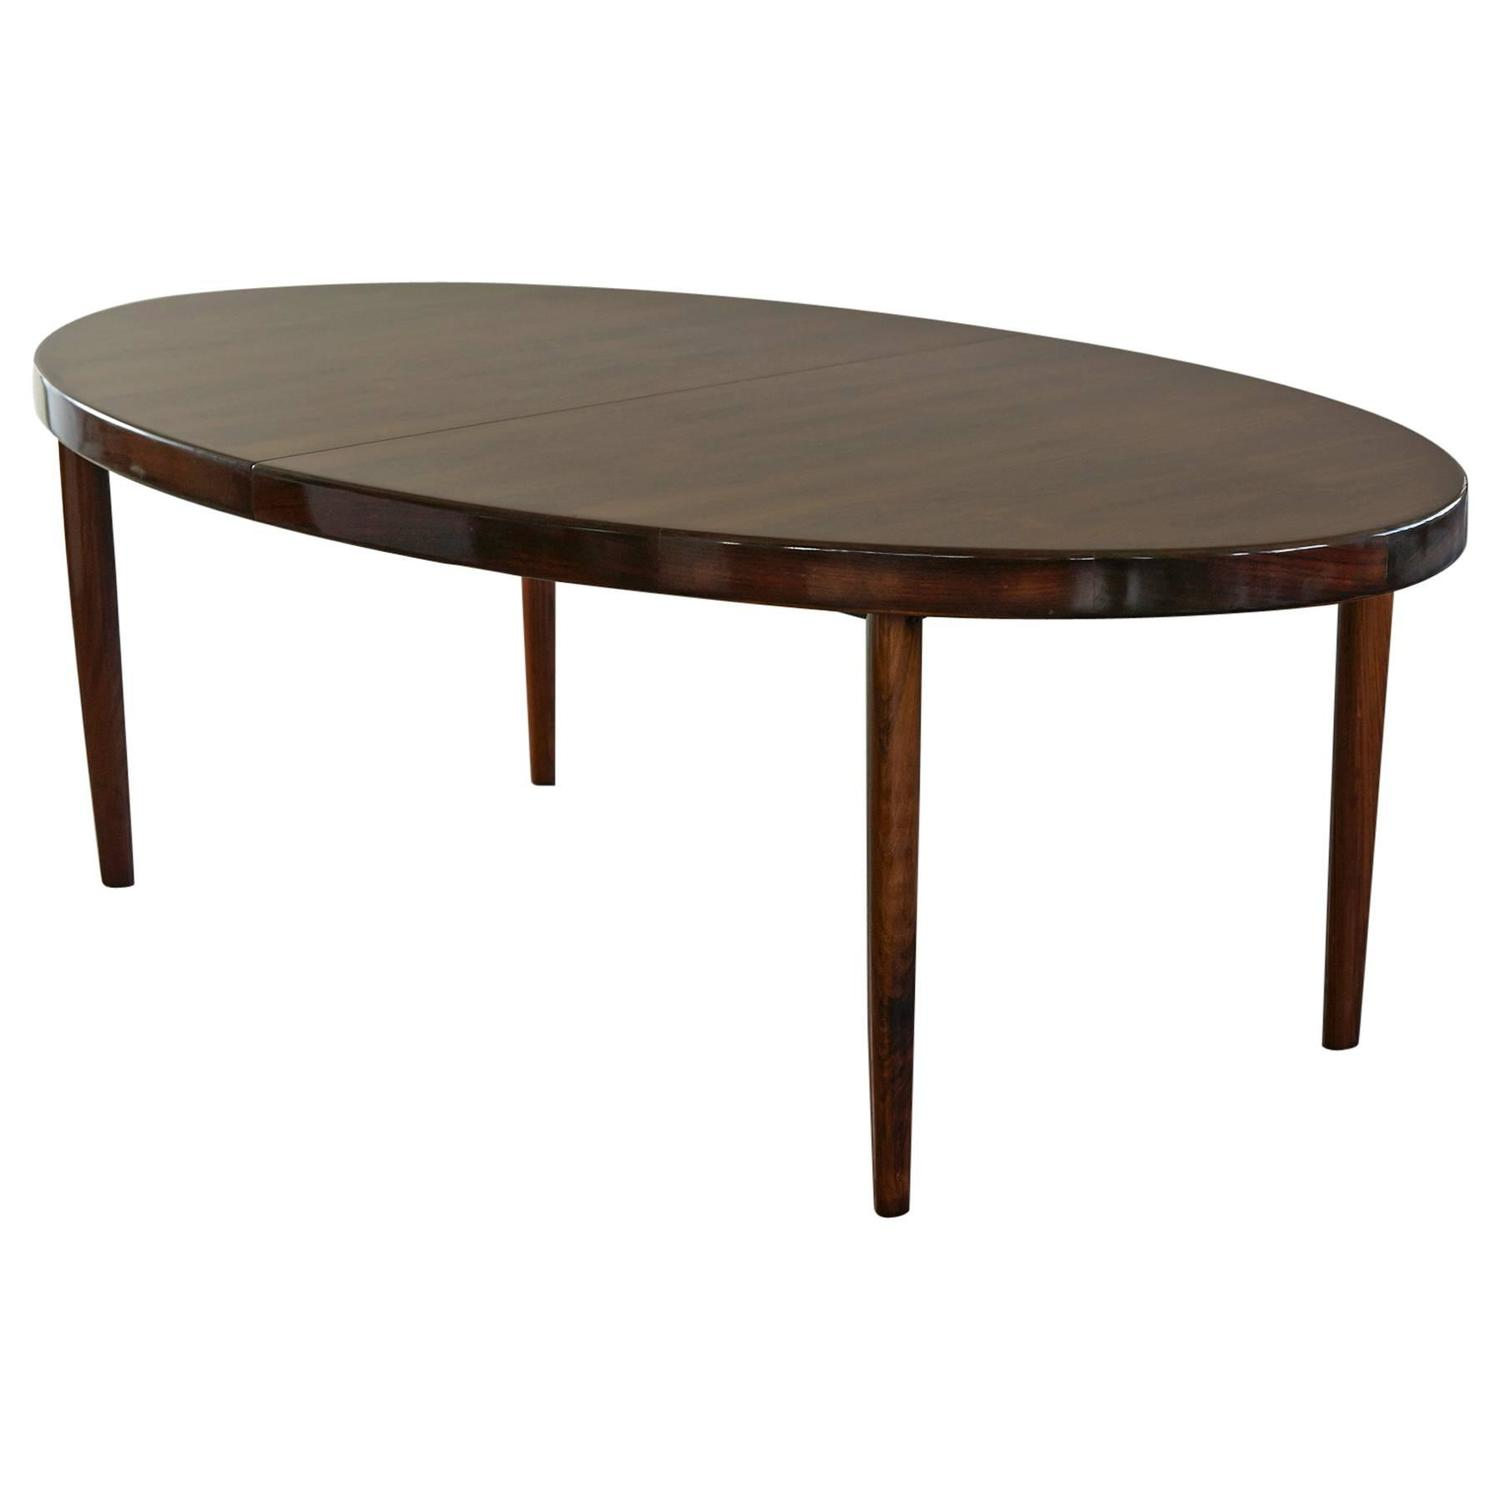 Rosewood oval extension dining table by johannes andersen Table extenders dining room